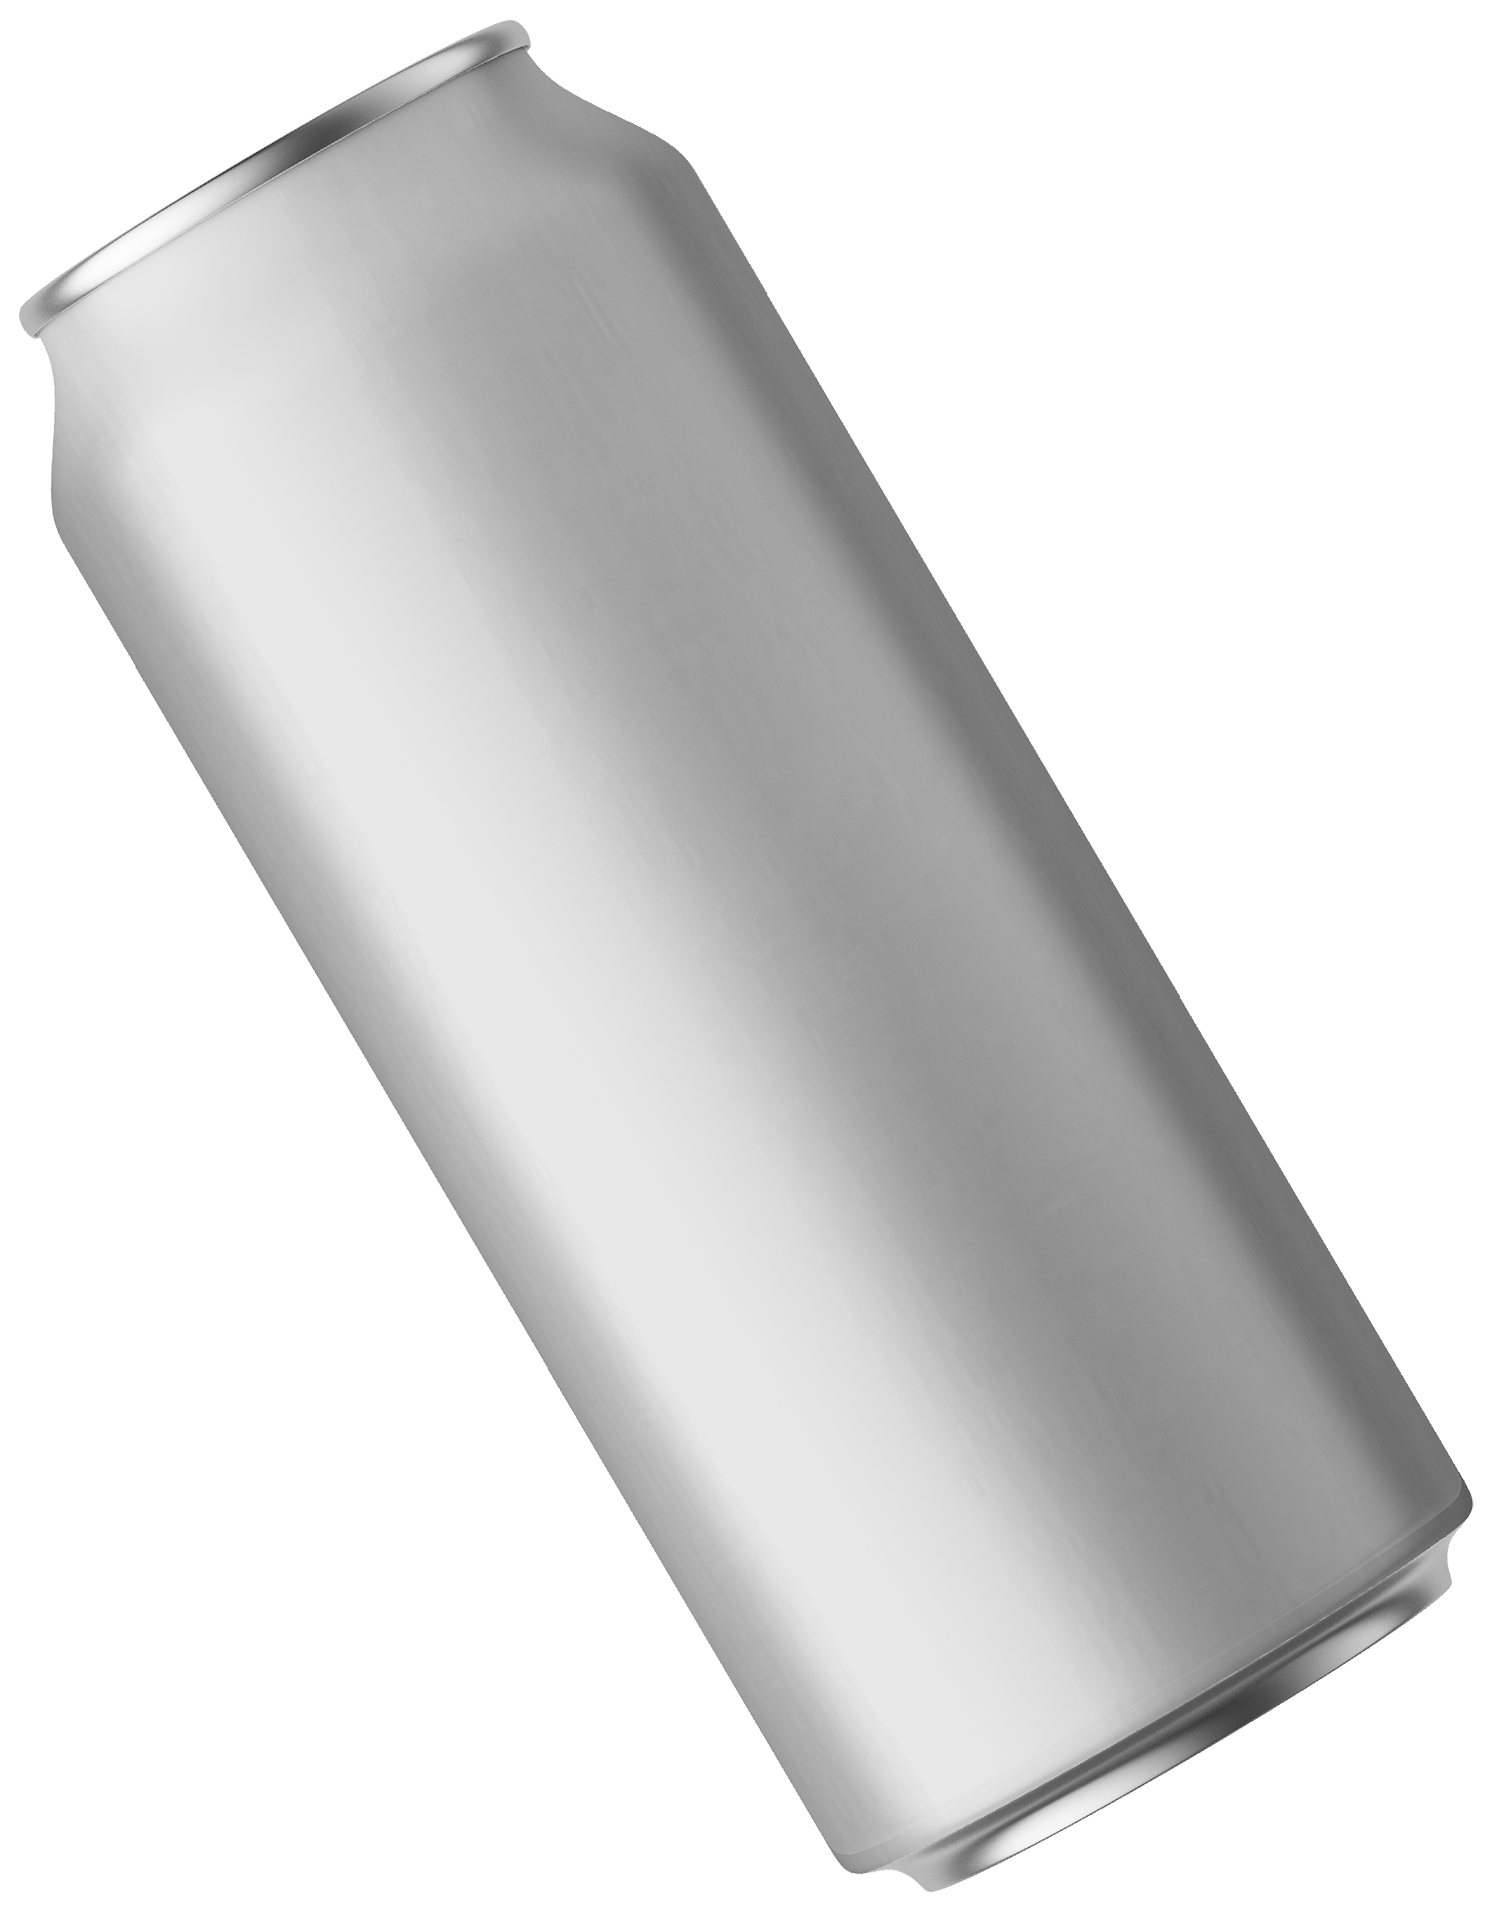 A silver can with no label suspended at an angle